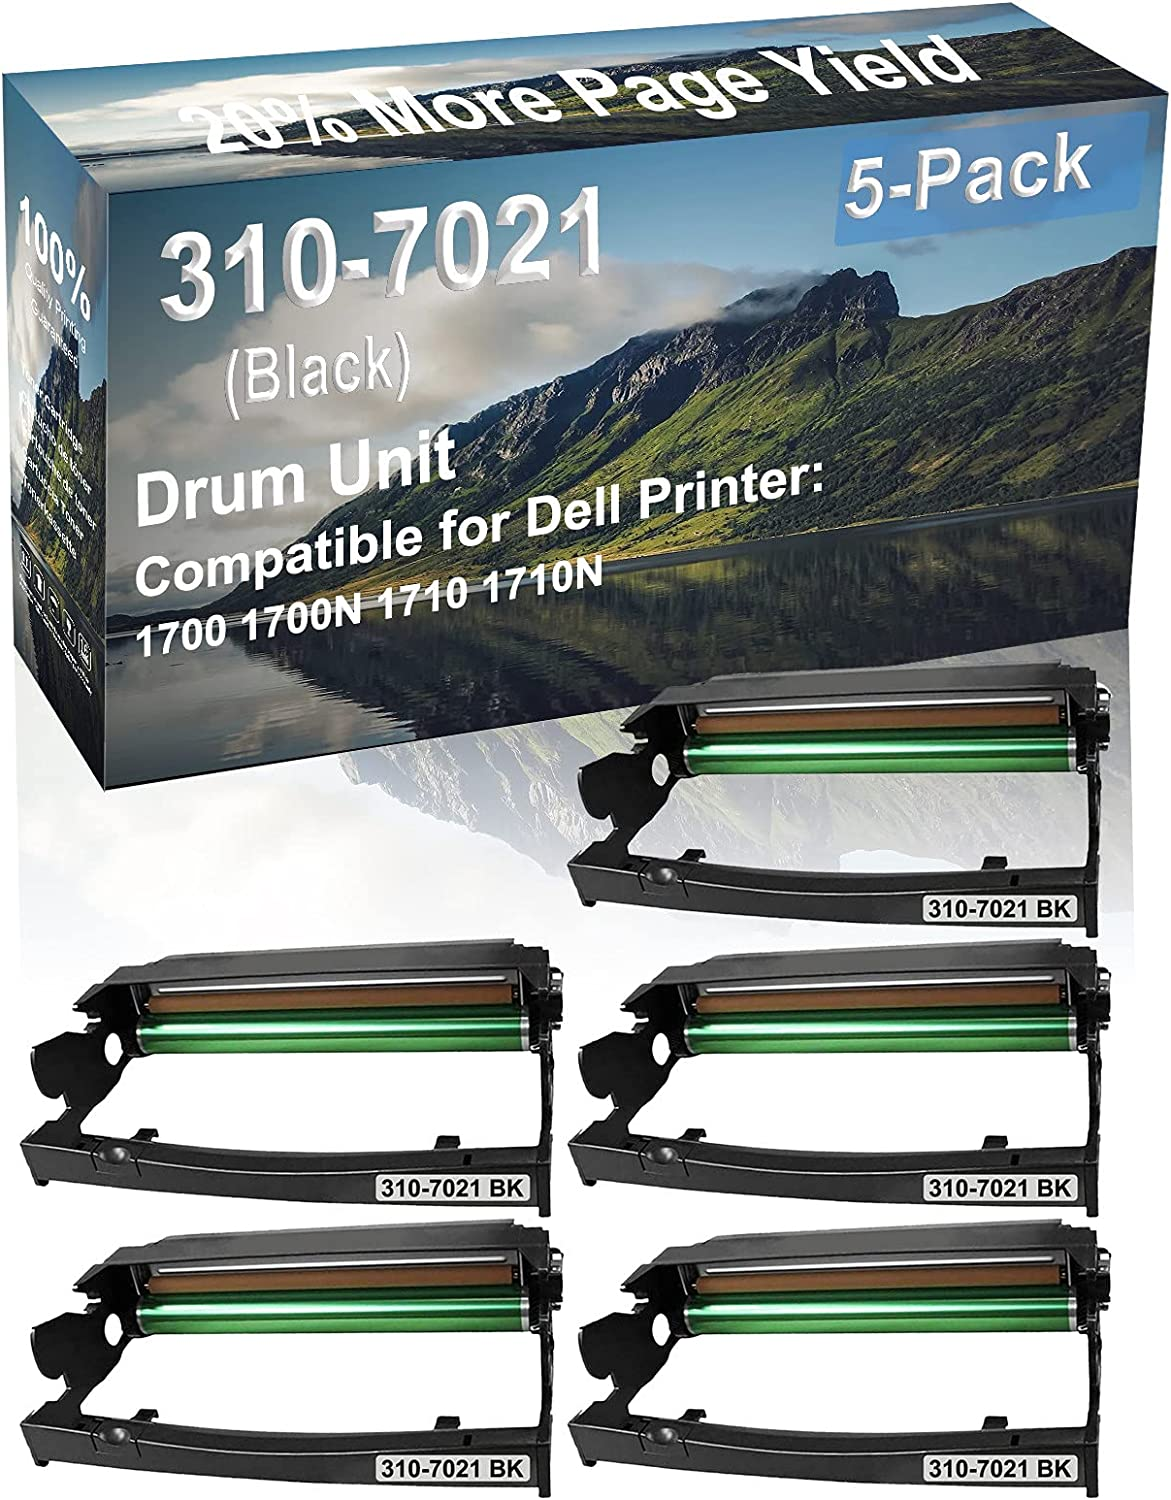 5-Pack Compatible Drum Unit (Black) Replacement for Dell 310-7021 Drum Kit use for Dell 1700 1700N 1710 1710N Printer